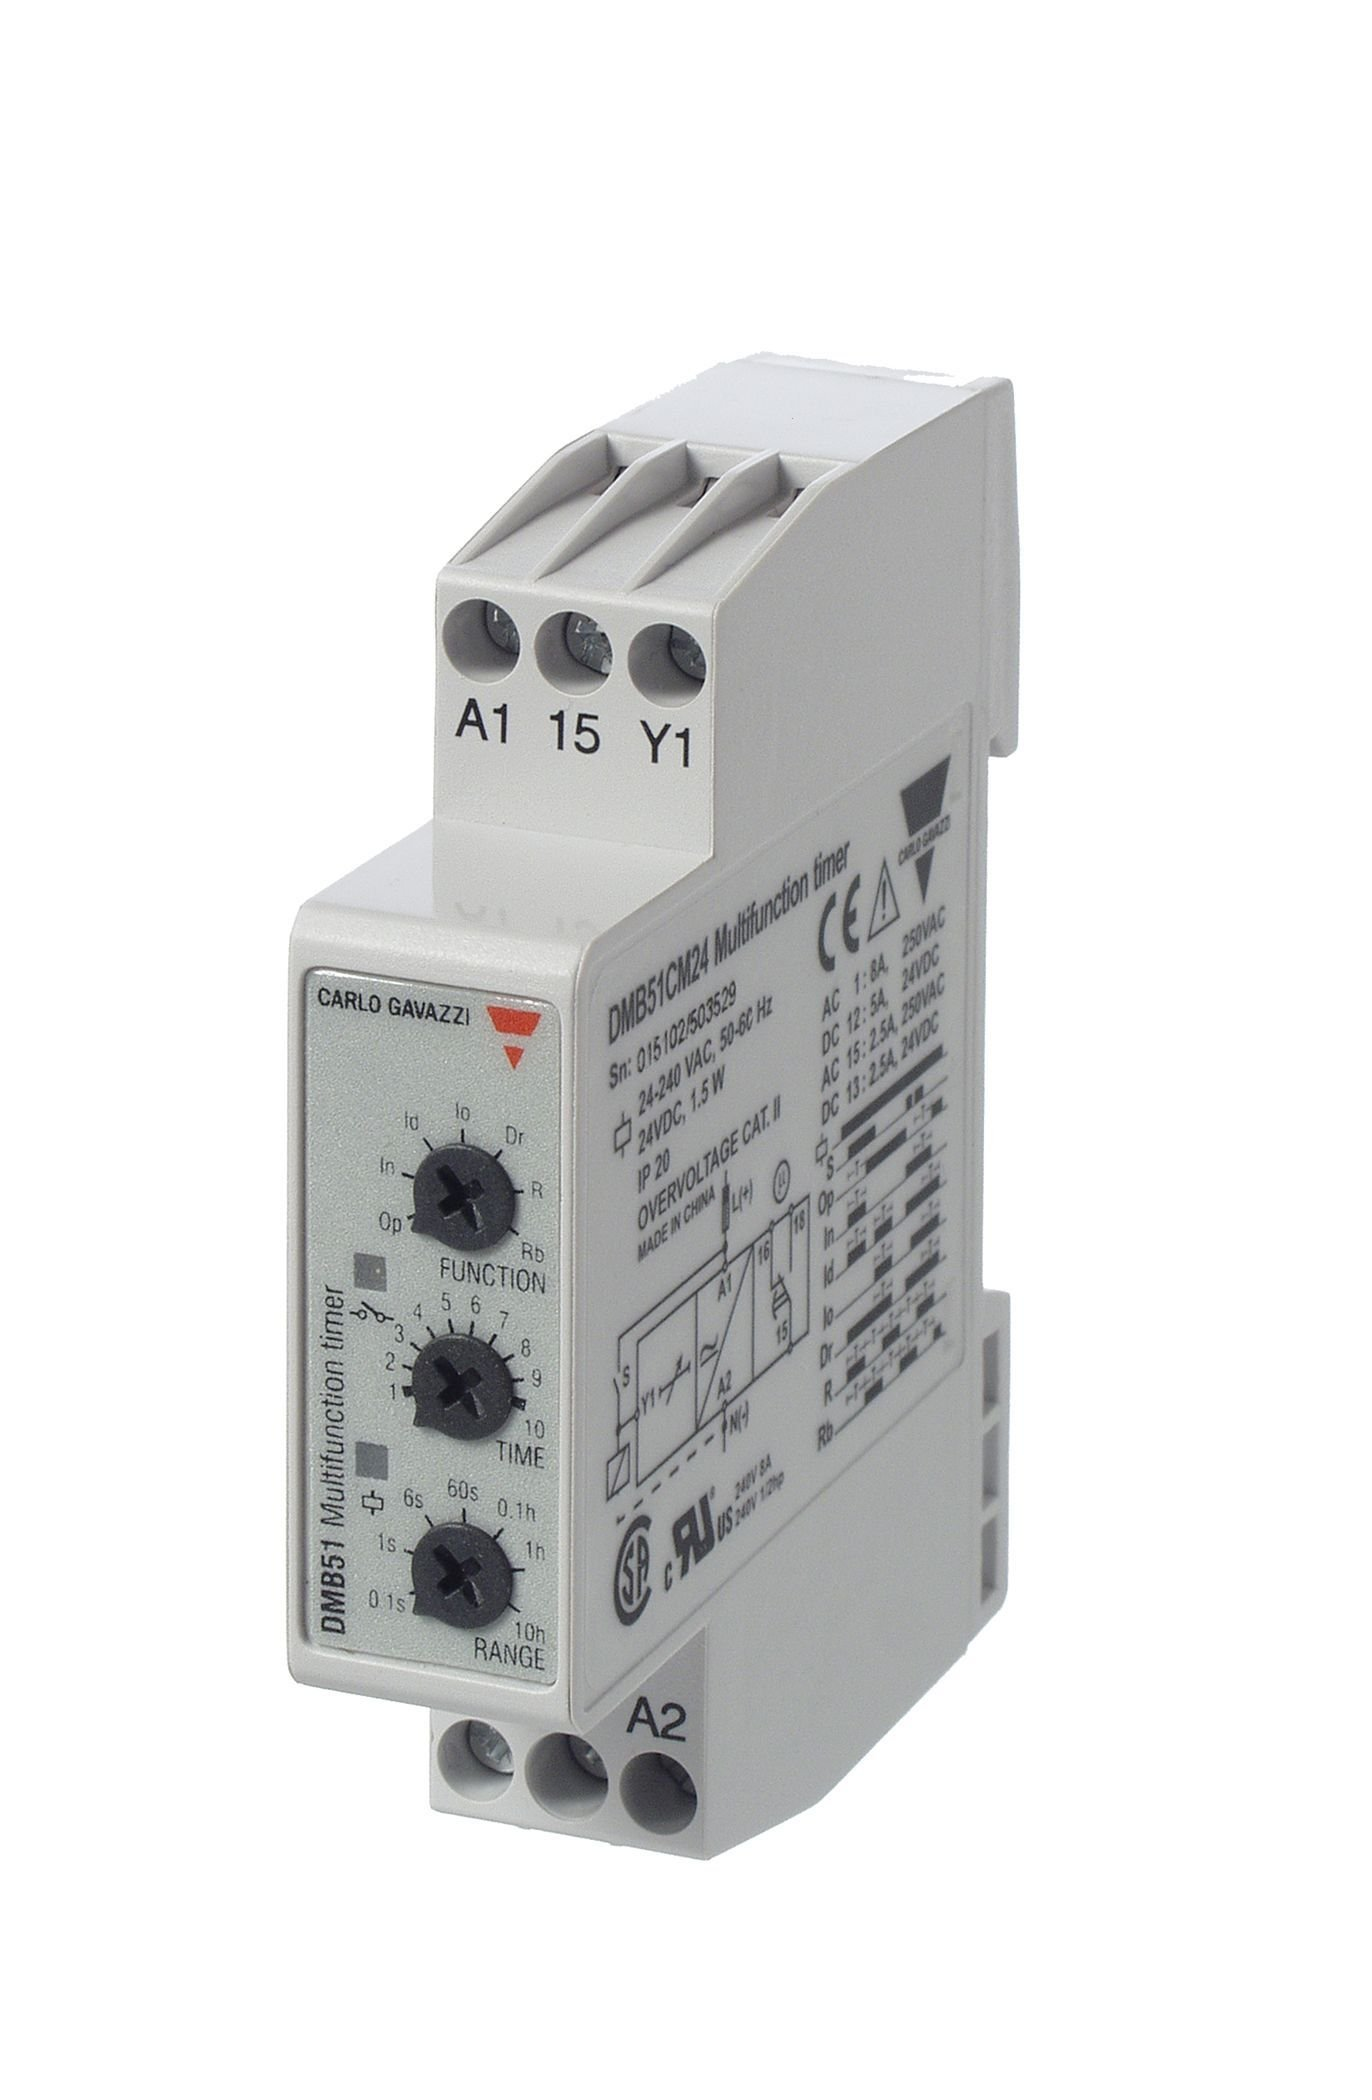 CARLO GAVAZZI DMB51CM24 Mini Multi Function Timer, Slim 17.5 mm Width, Seven Timing Functions, Adjustable Timer Setting, 0.1 Seconds to 100 Hours with Six Sub- Ranges, 24-240 VAC/DC, SPDT 5 amp Contact Output, Diagnostic LEDs, 2.6 oz. Size, 24 mm Height x